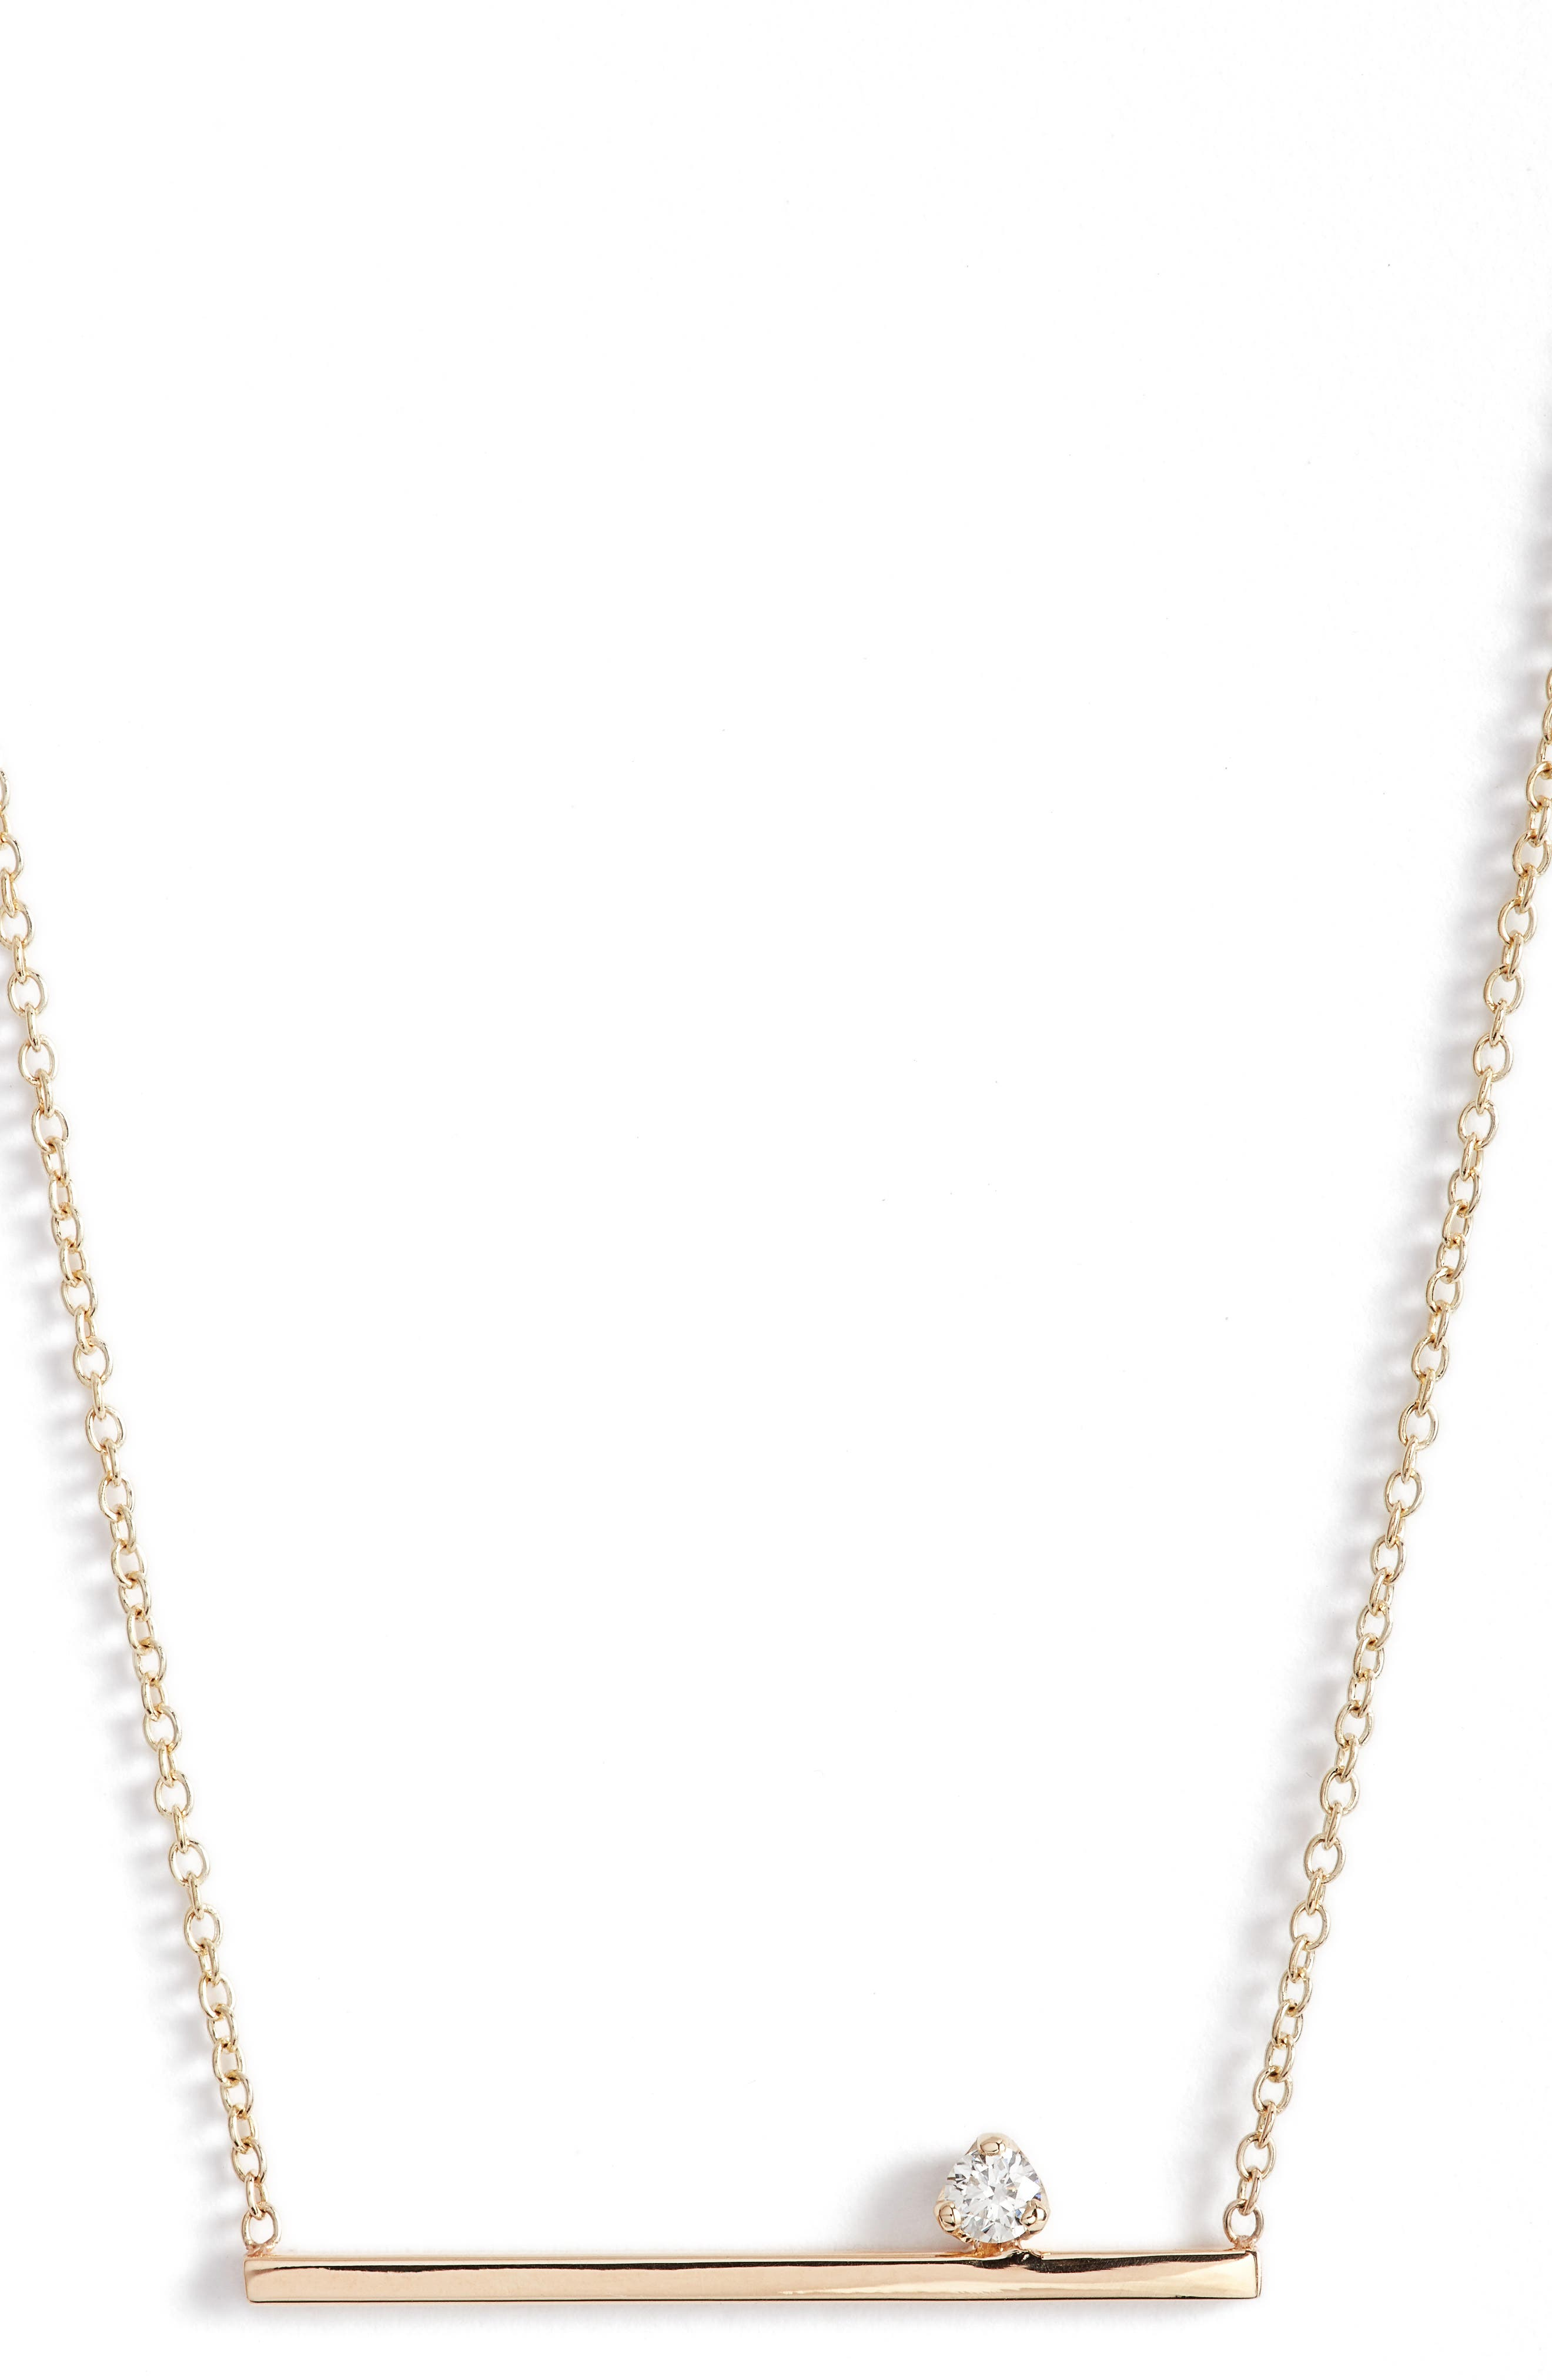 Floating Diamond Pendant Necklace,                         Main,                         color, 710